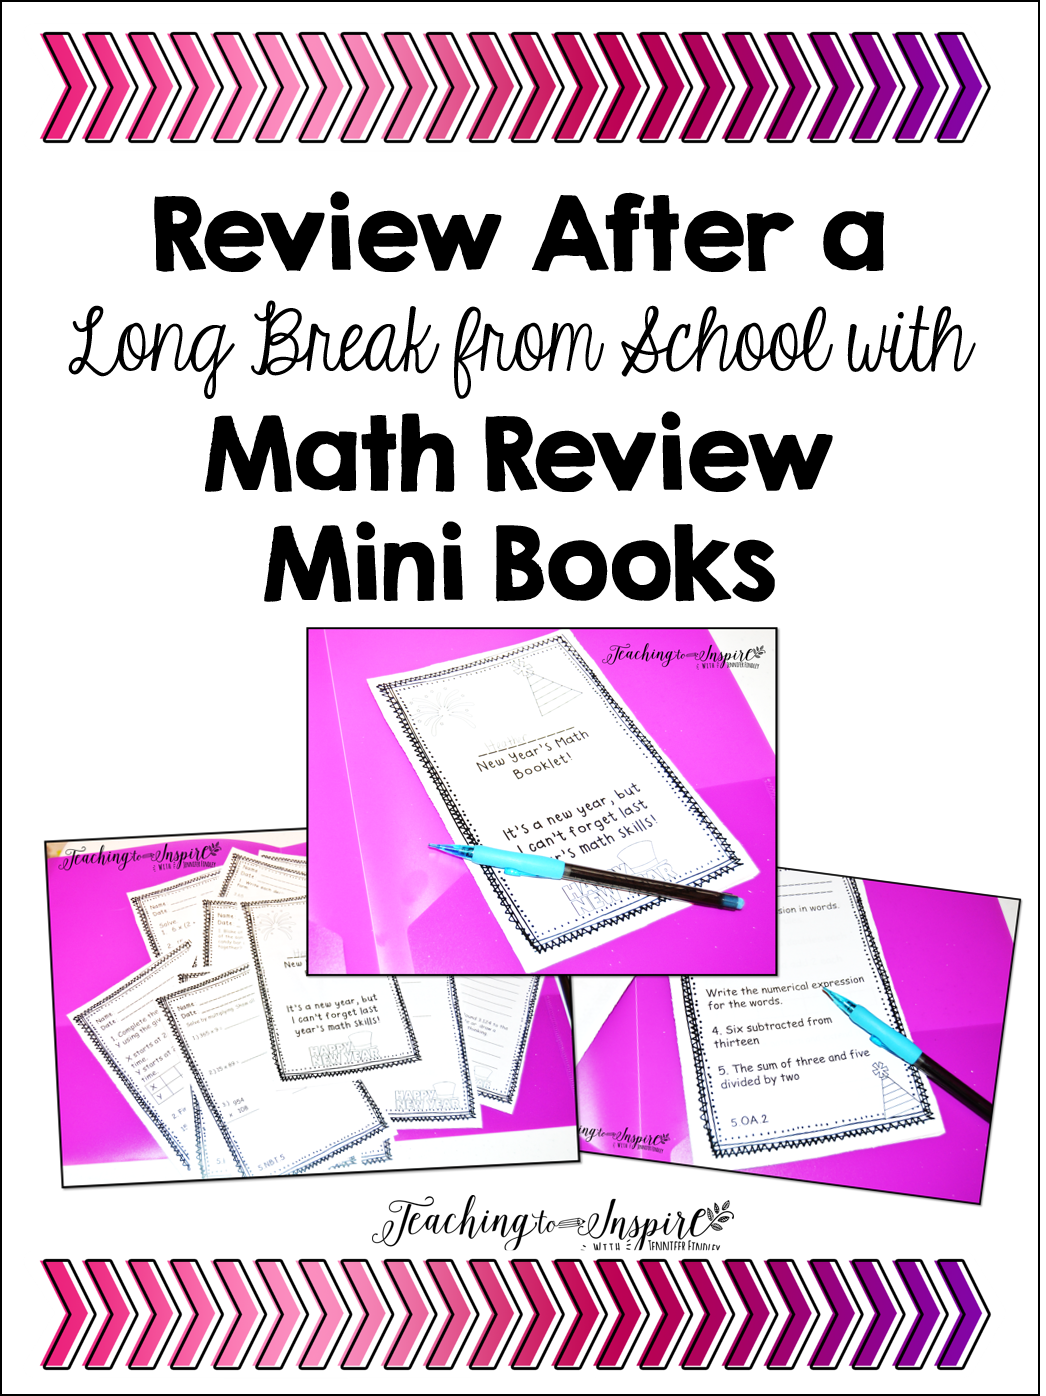 Review after a long break from school with math review books.